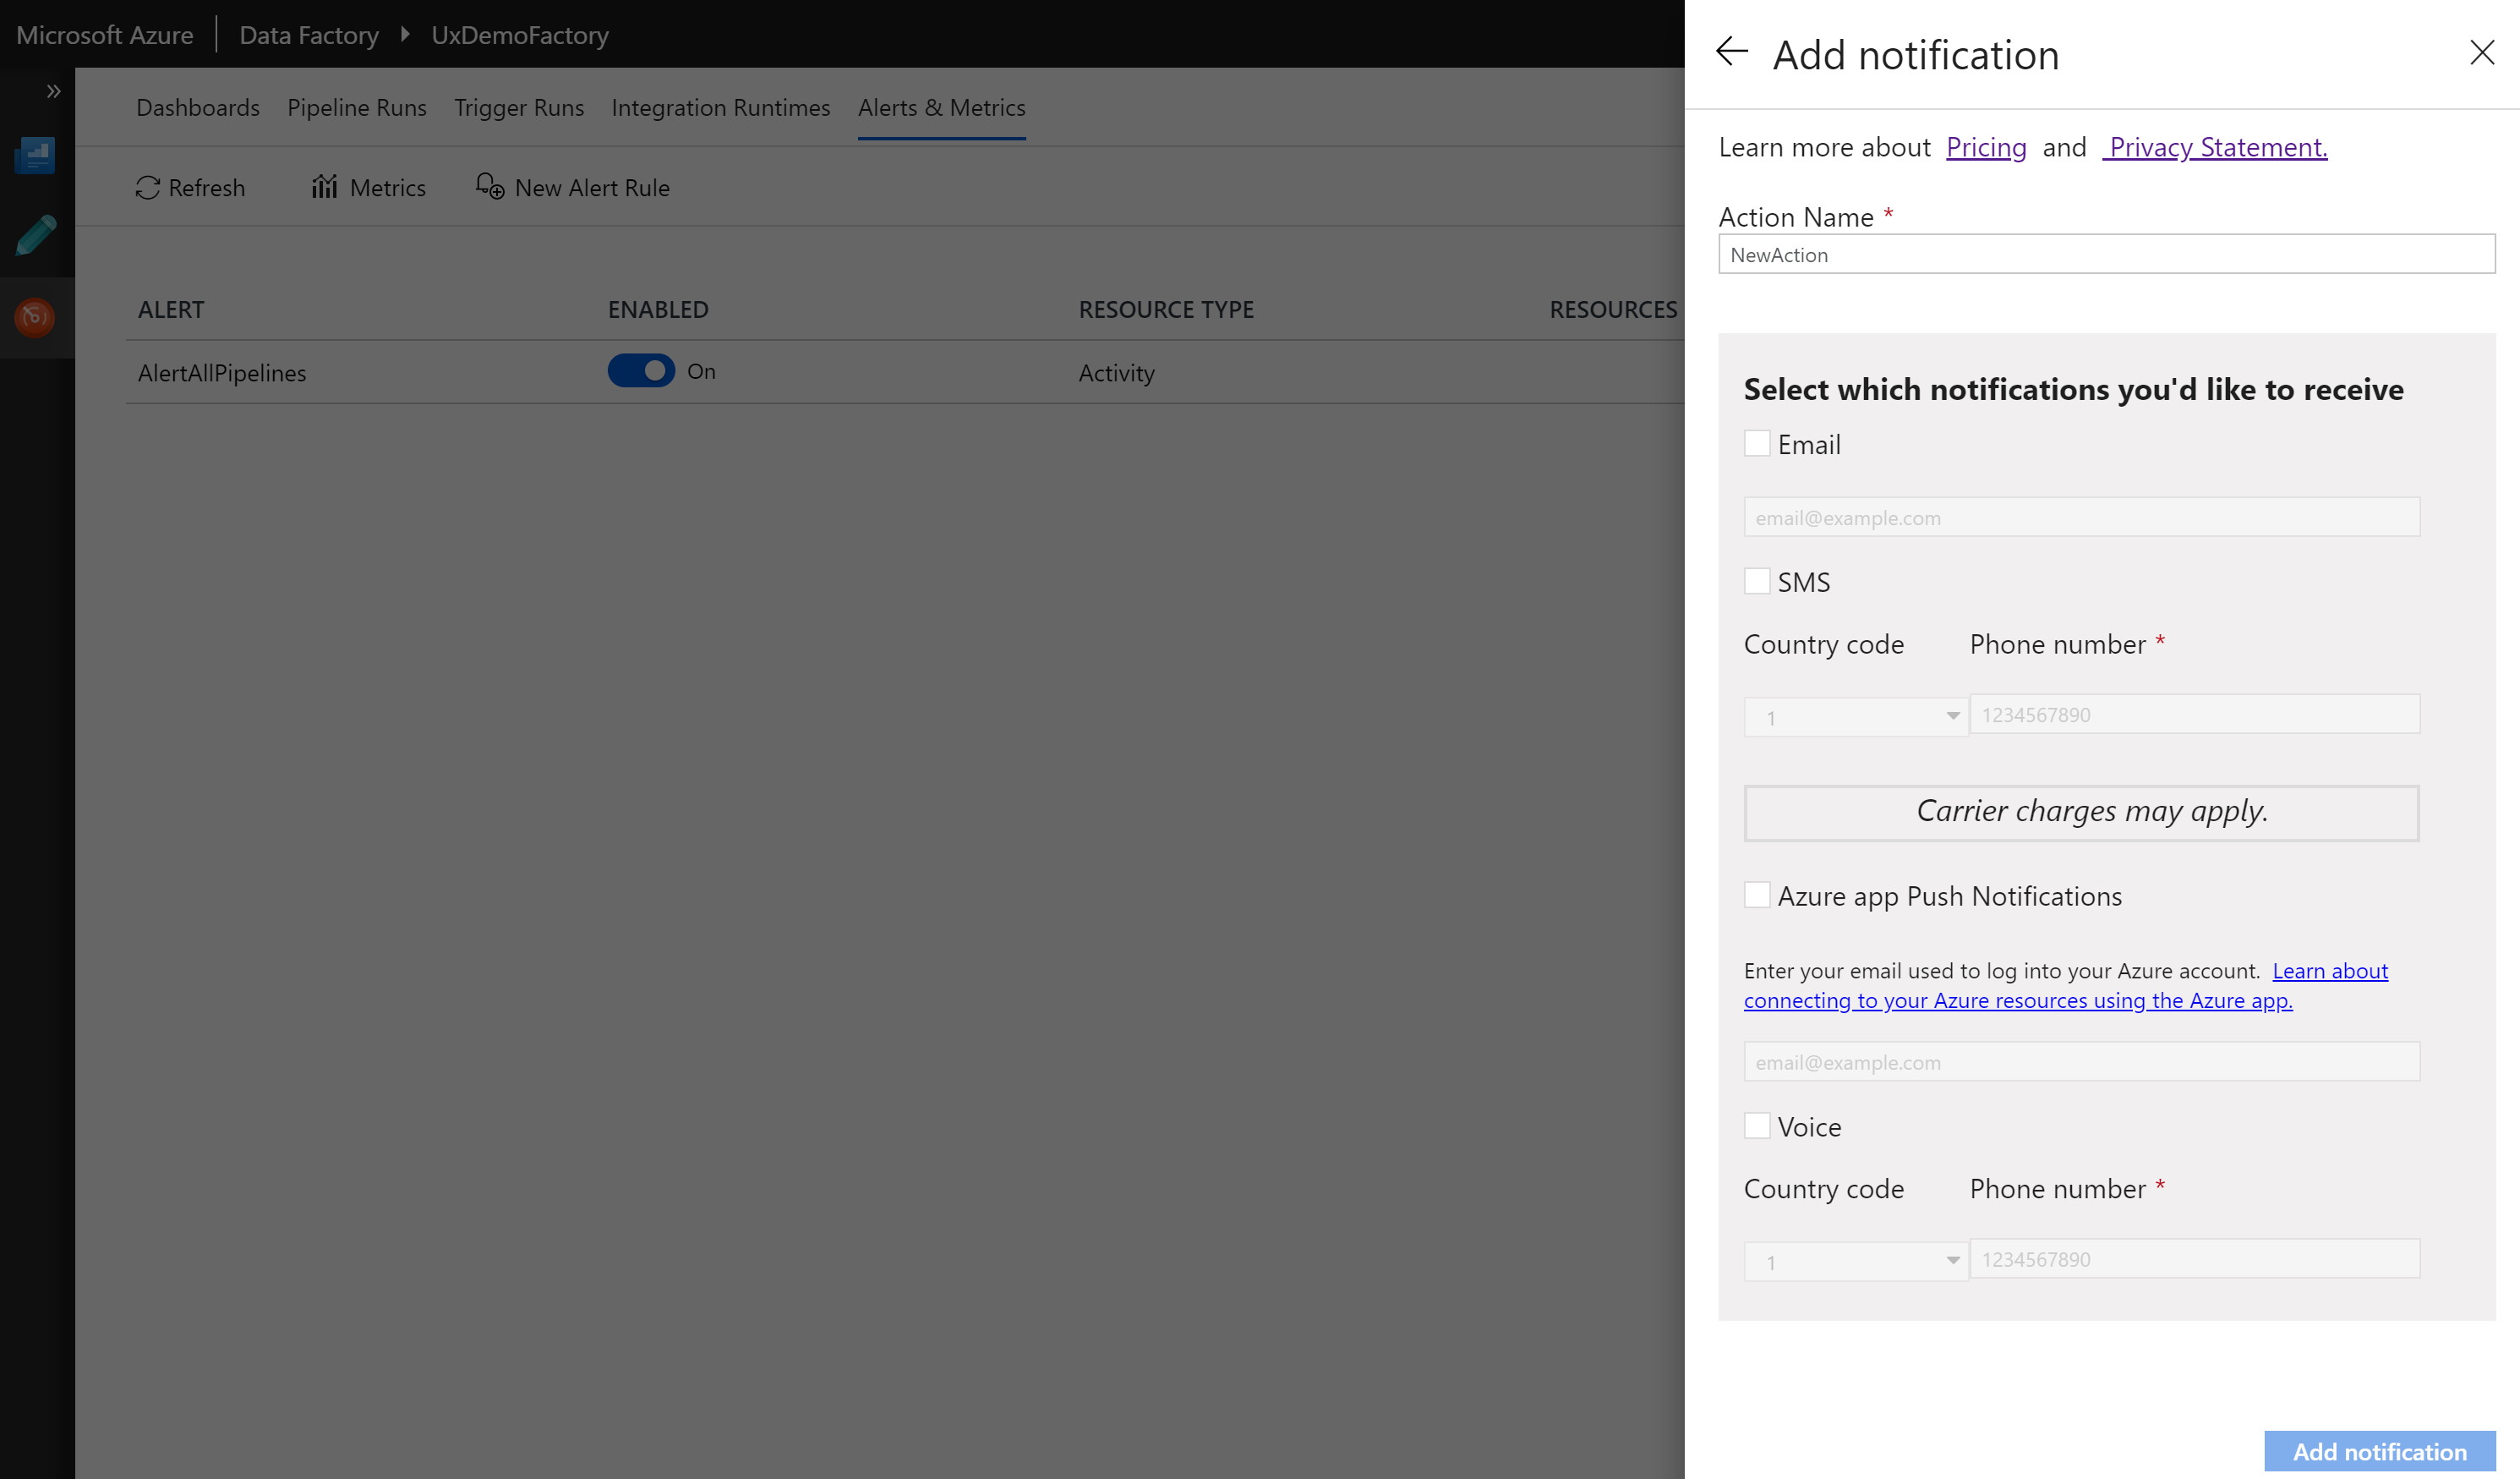 Configuring alert notifications in Azure Data Factory